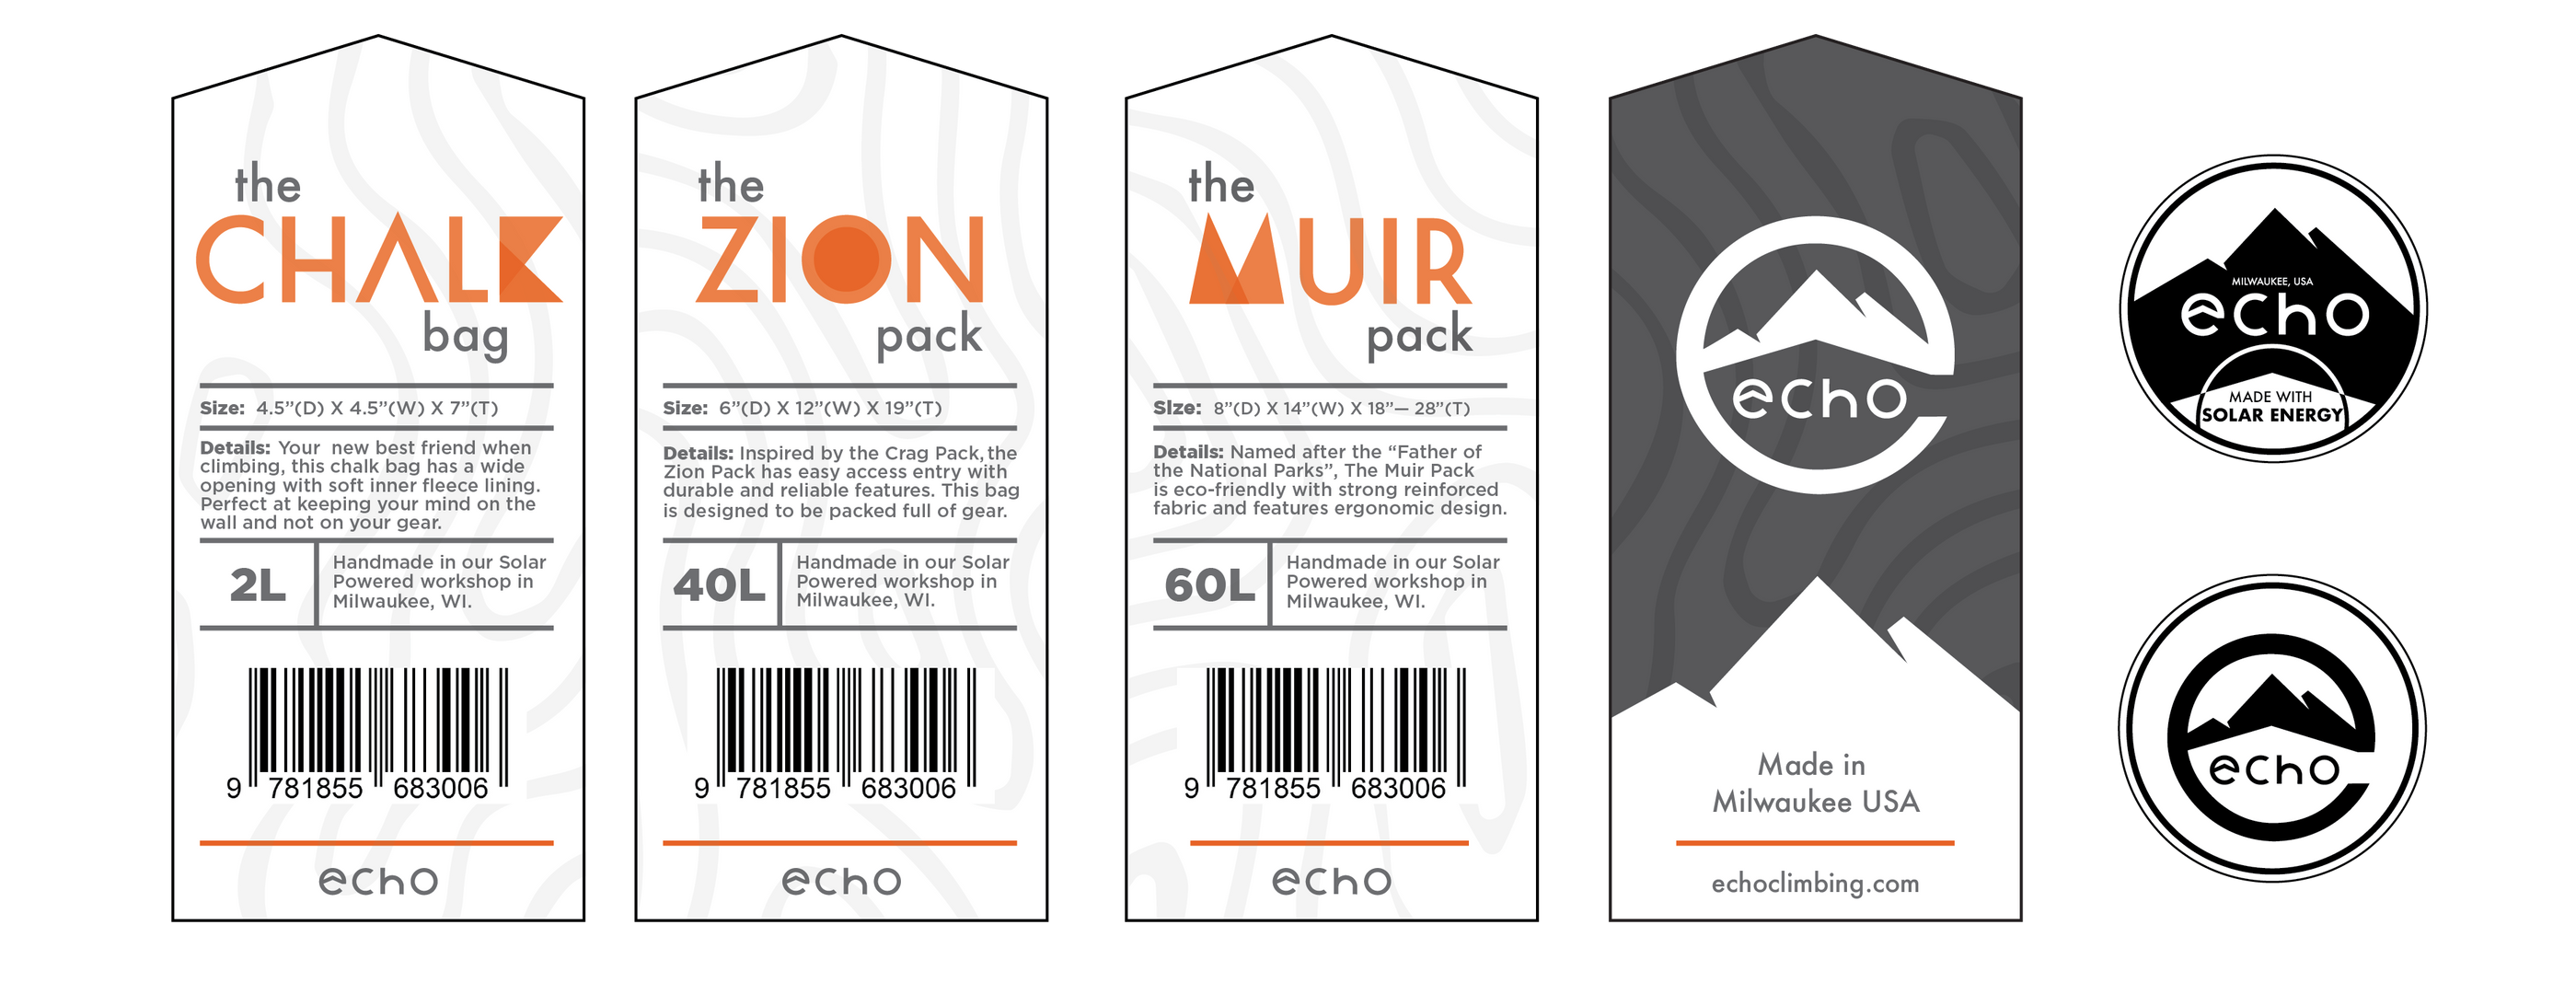 Echo Product Tags